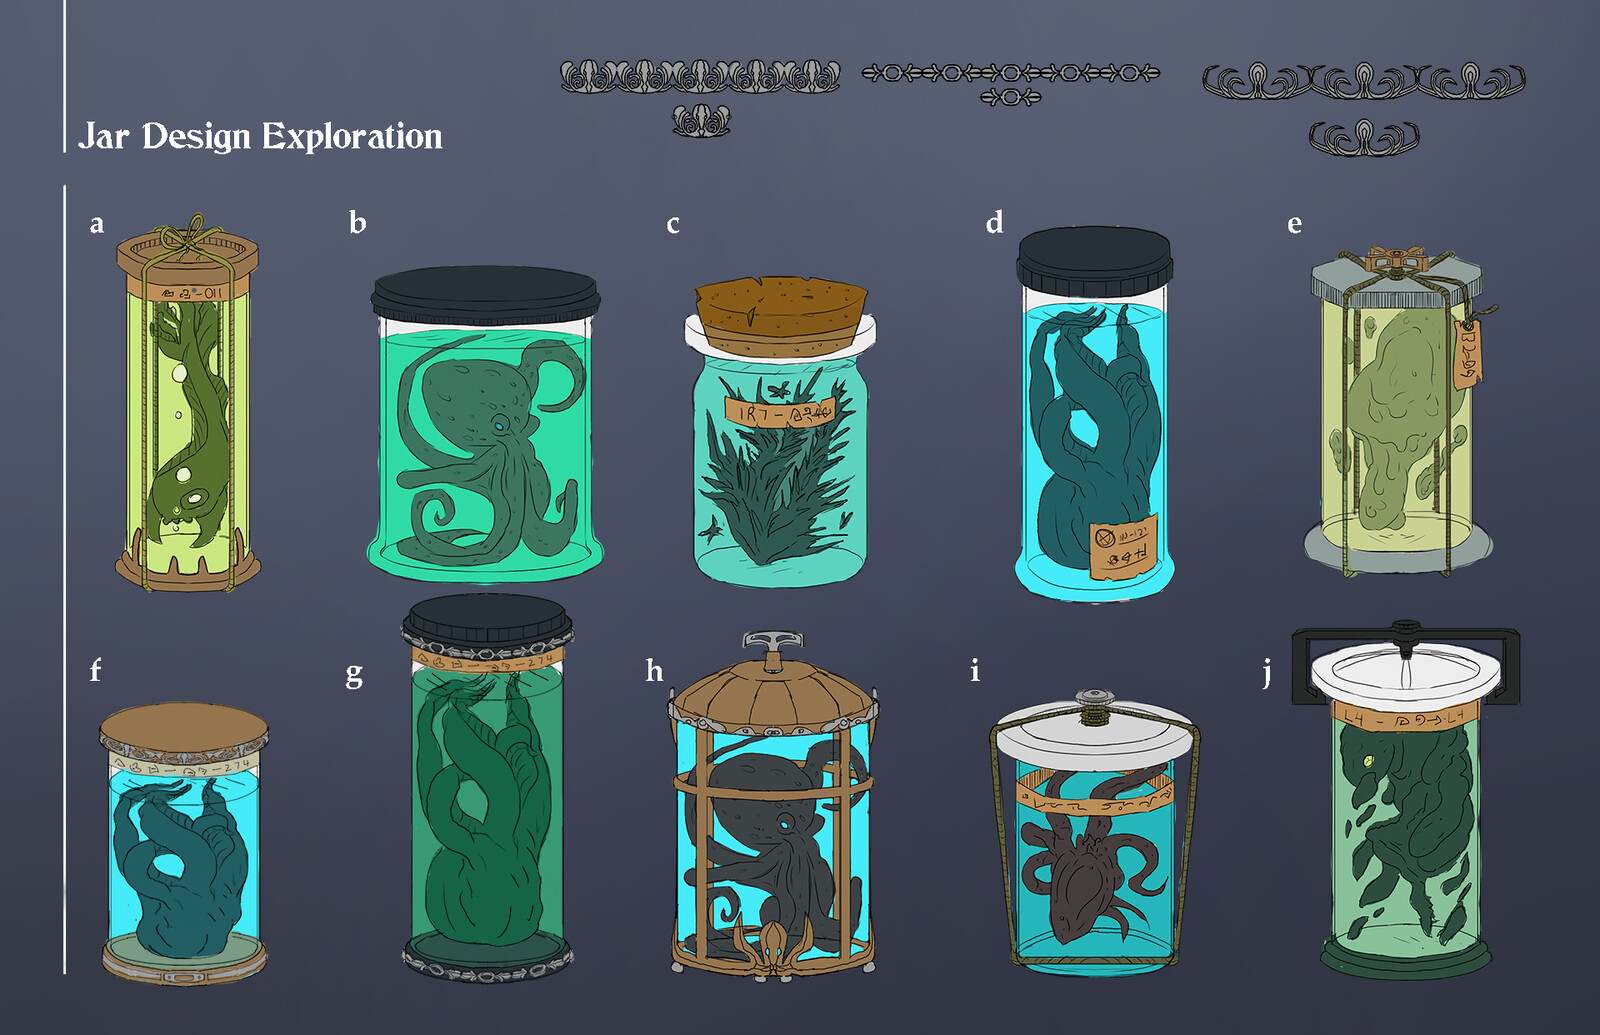 I wanted to explore the ideas of a more detailed and story designed jar element. I was thinking of gameplay and that the player would find a collectible or a special jar with a story related specimen inside.